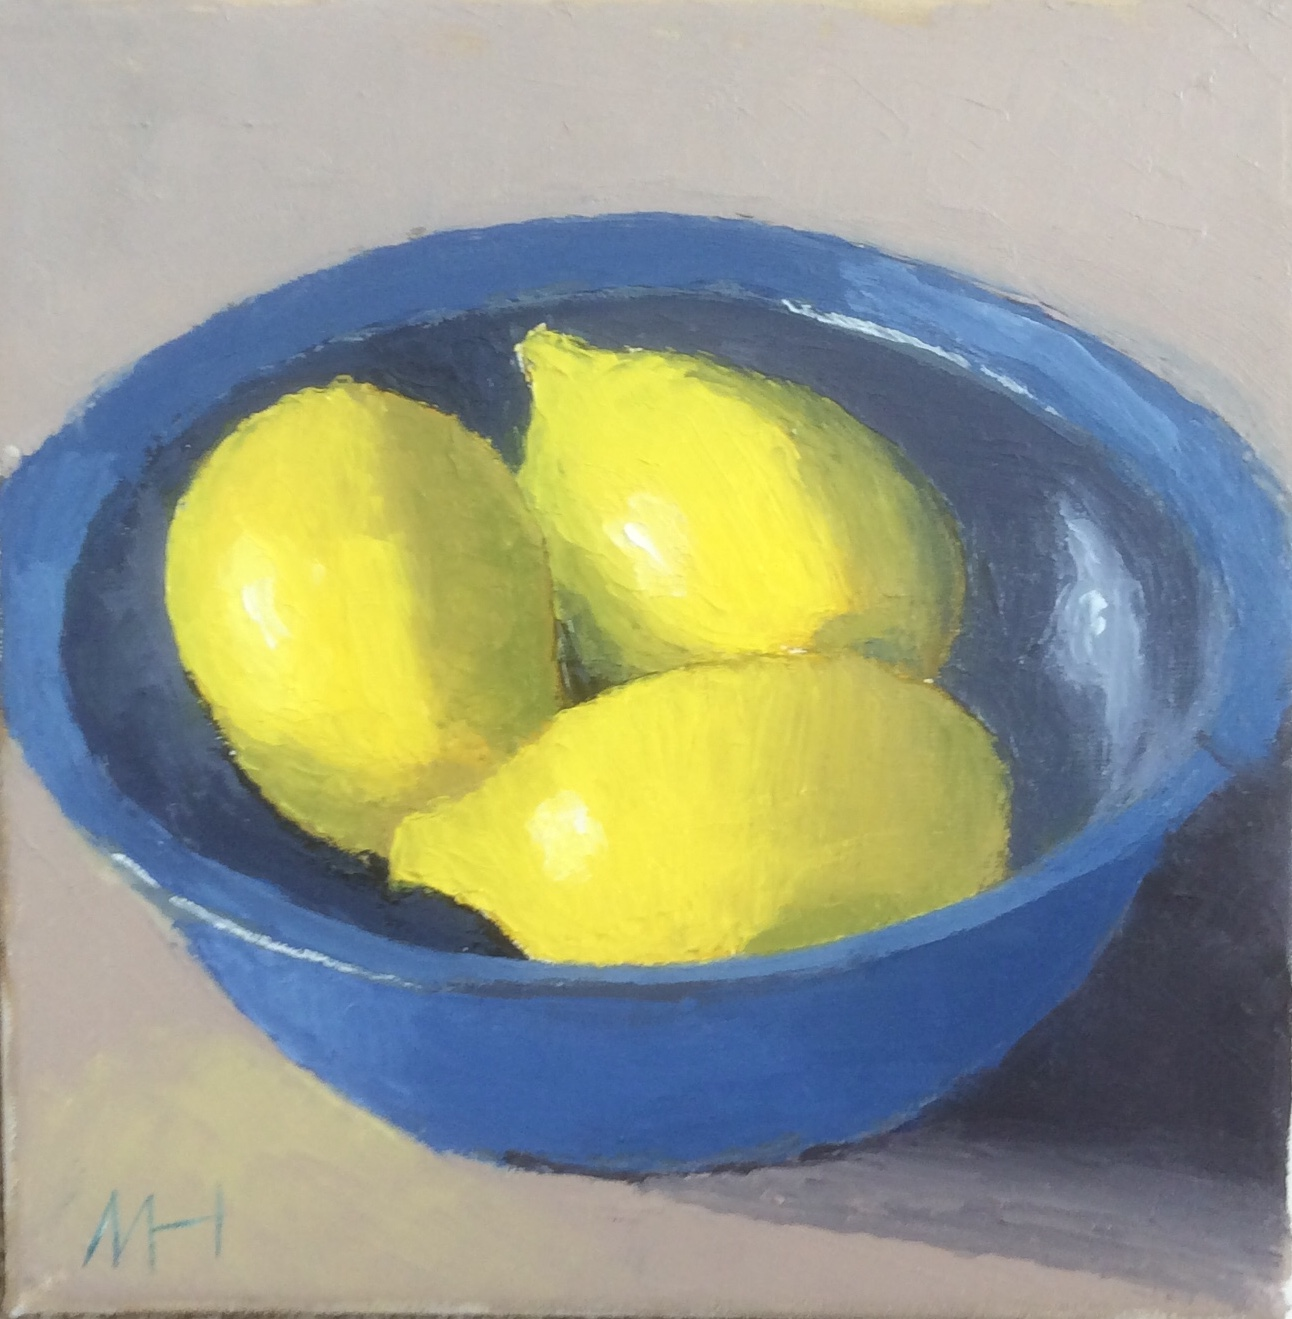 Three lemons in a bowl